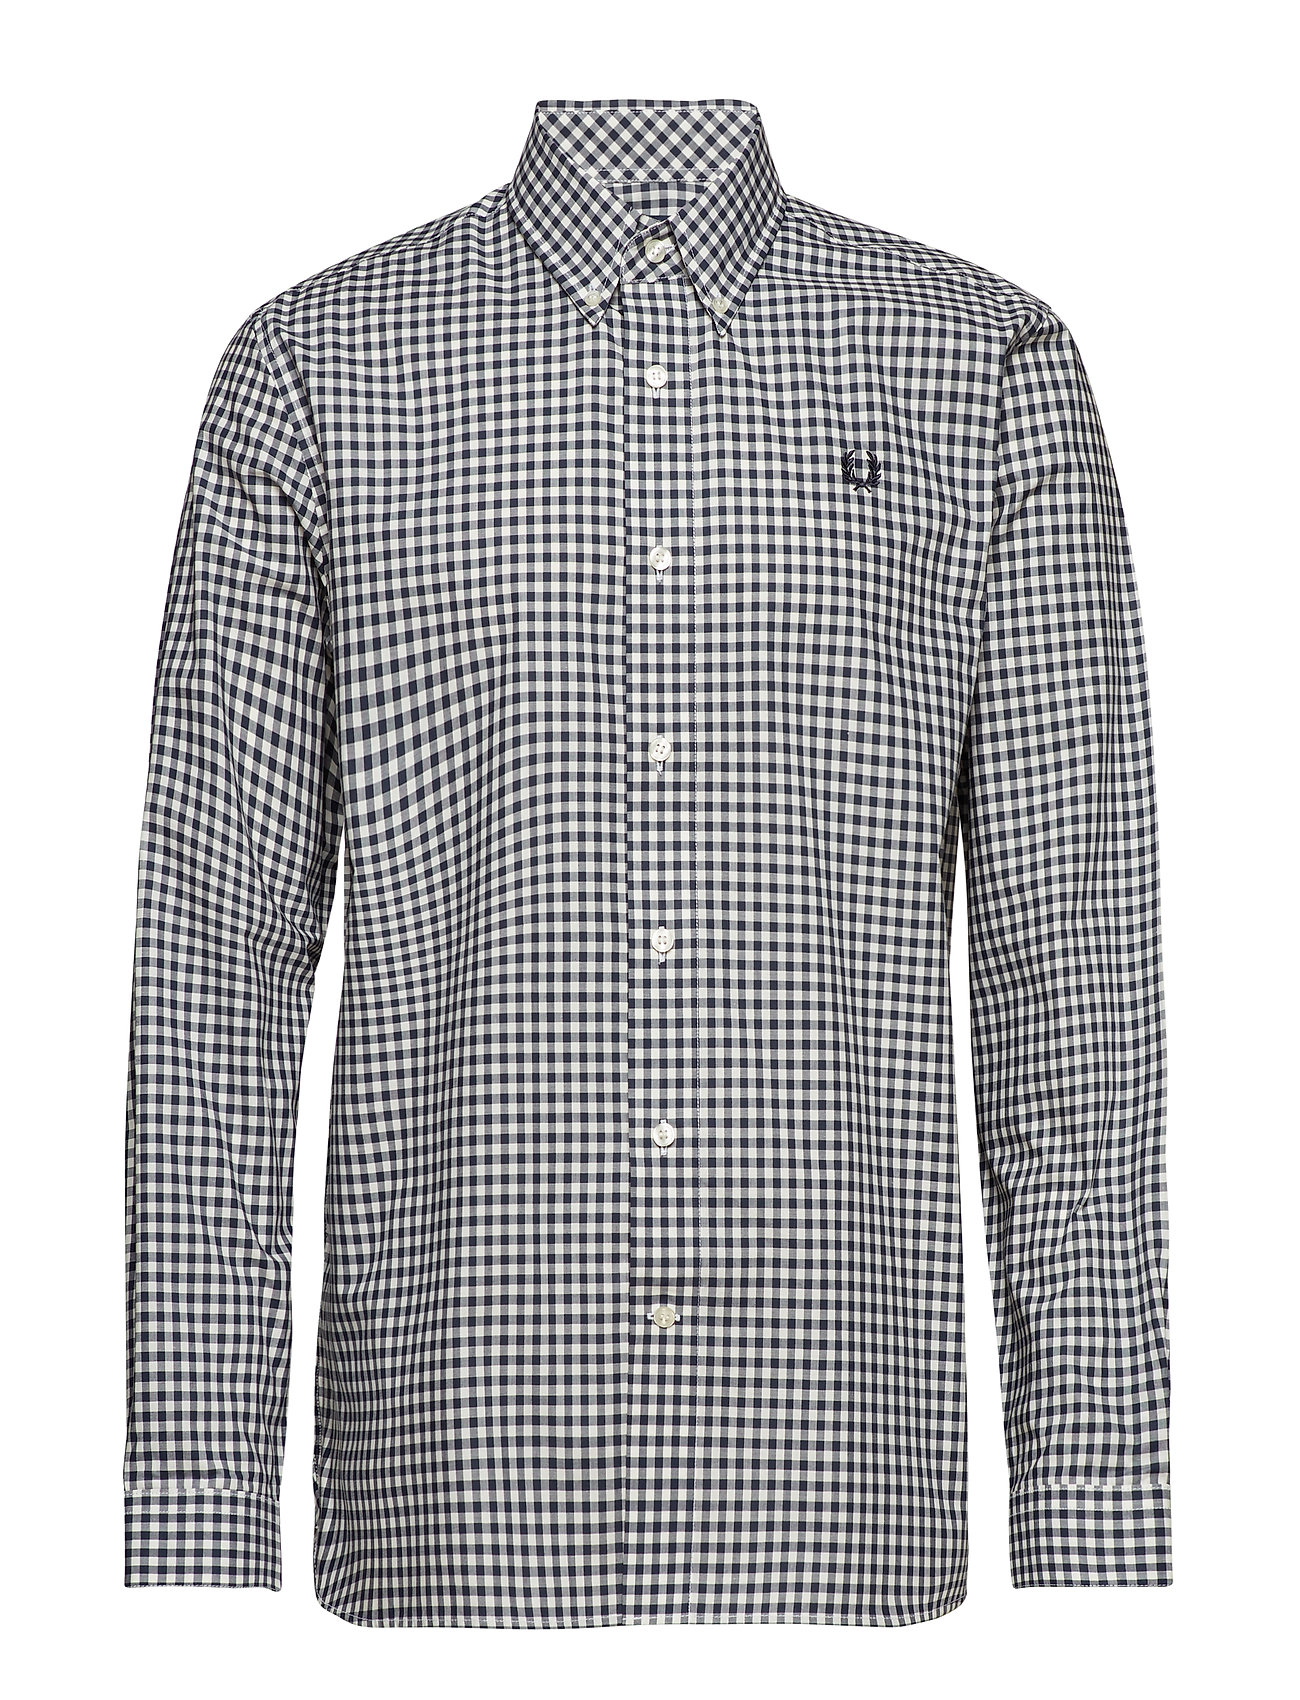 Fred Perry 2 COL GINGHAM SHIRT - DARK AIRFORCE